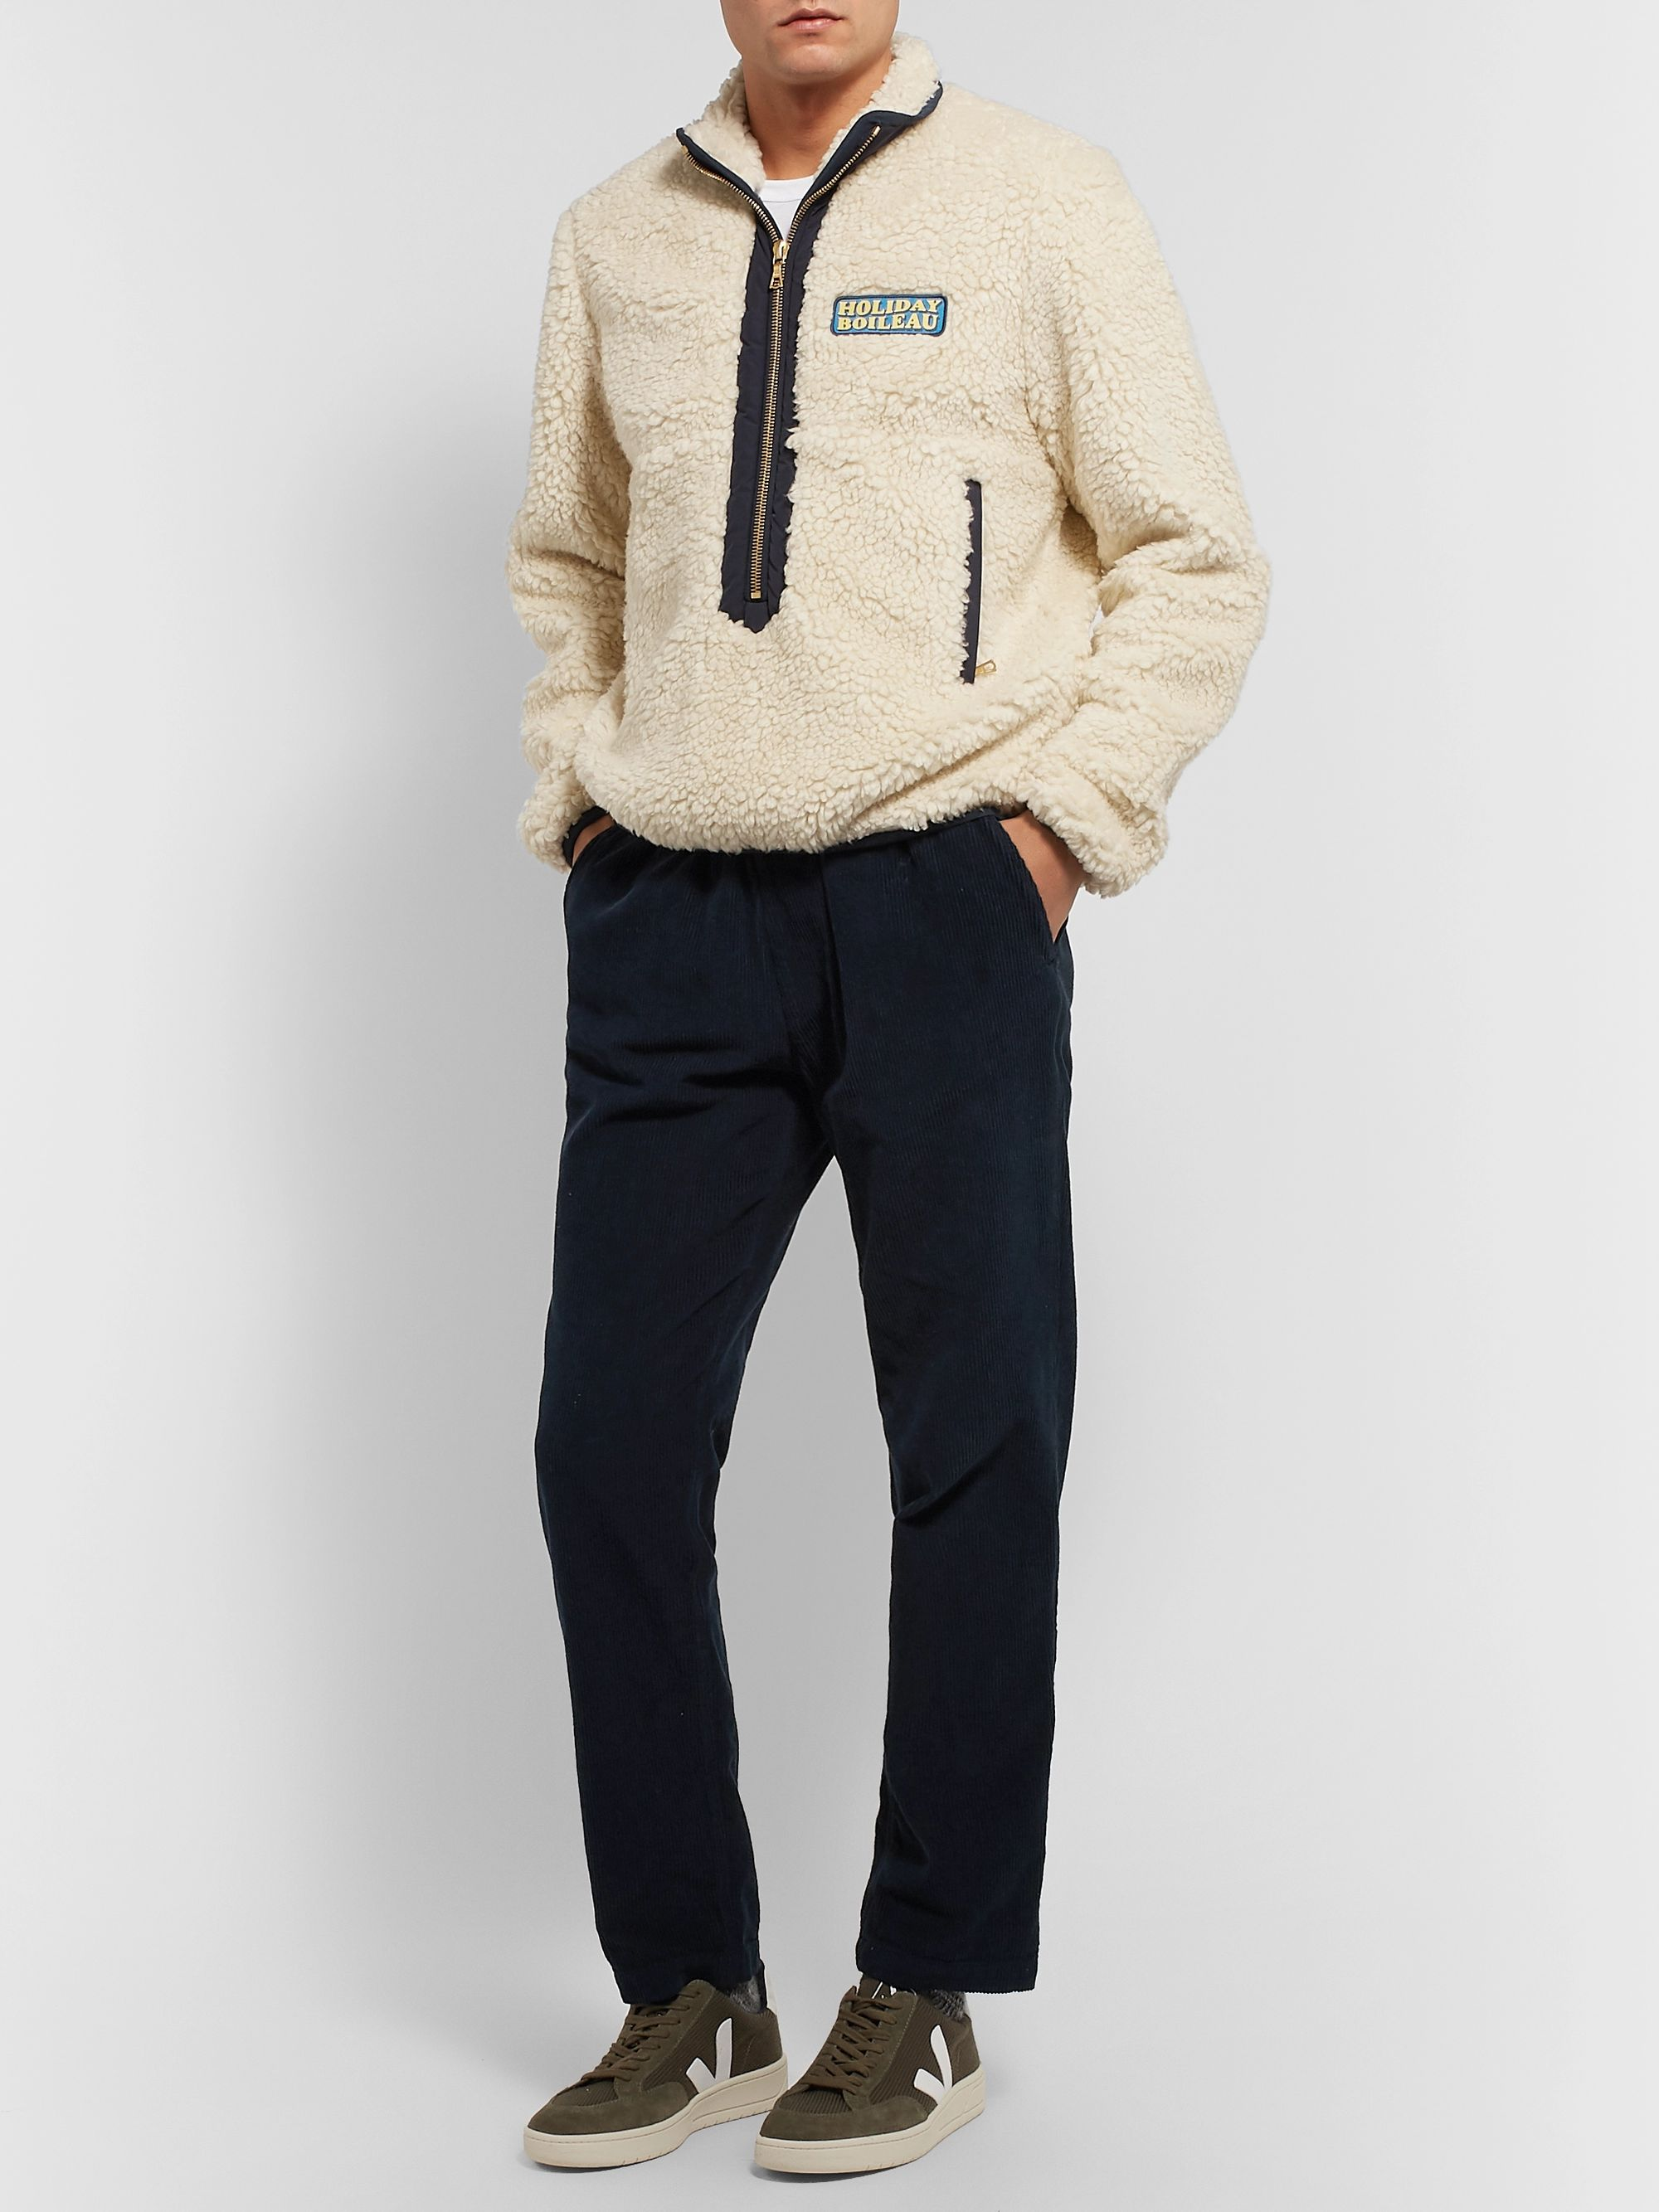 Holiday Boileau Yvon Logo-Appliquéd Shell-Trimmed Fleece Half-Zip Jacket